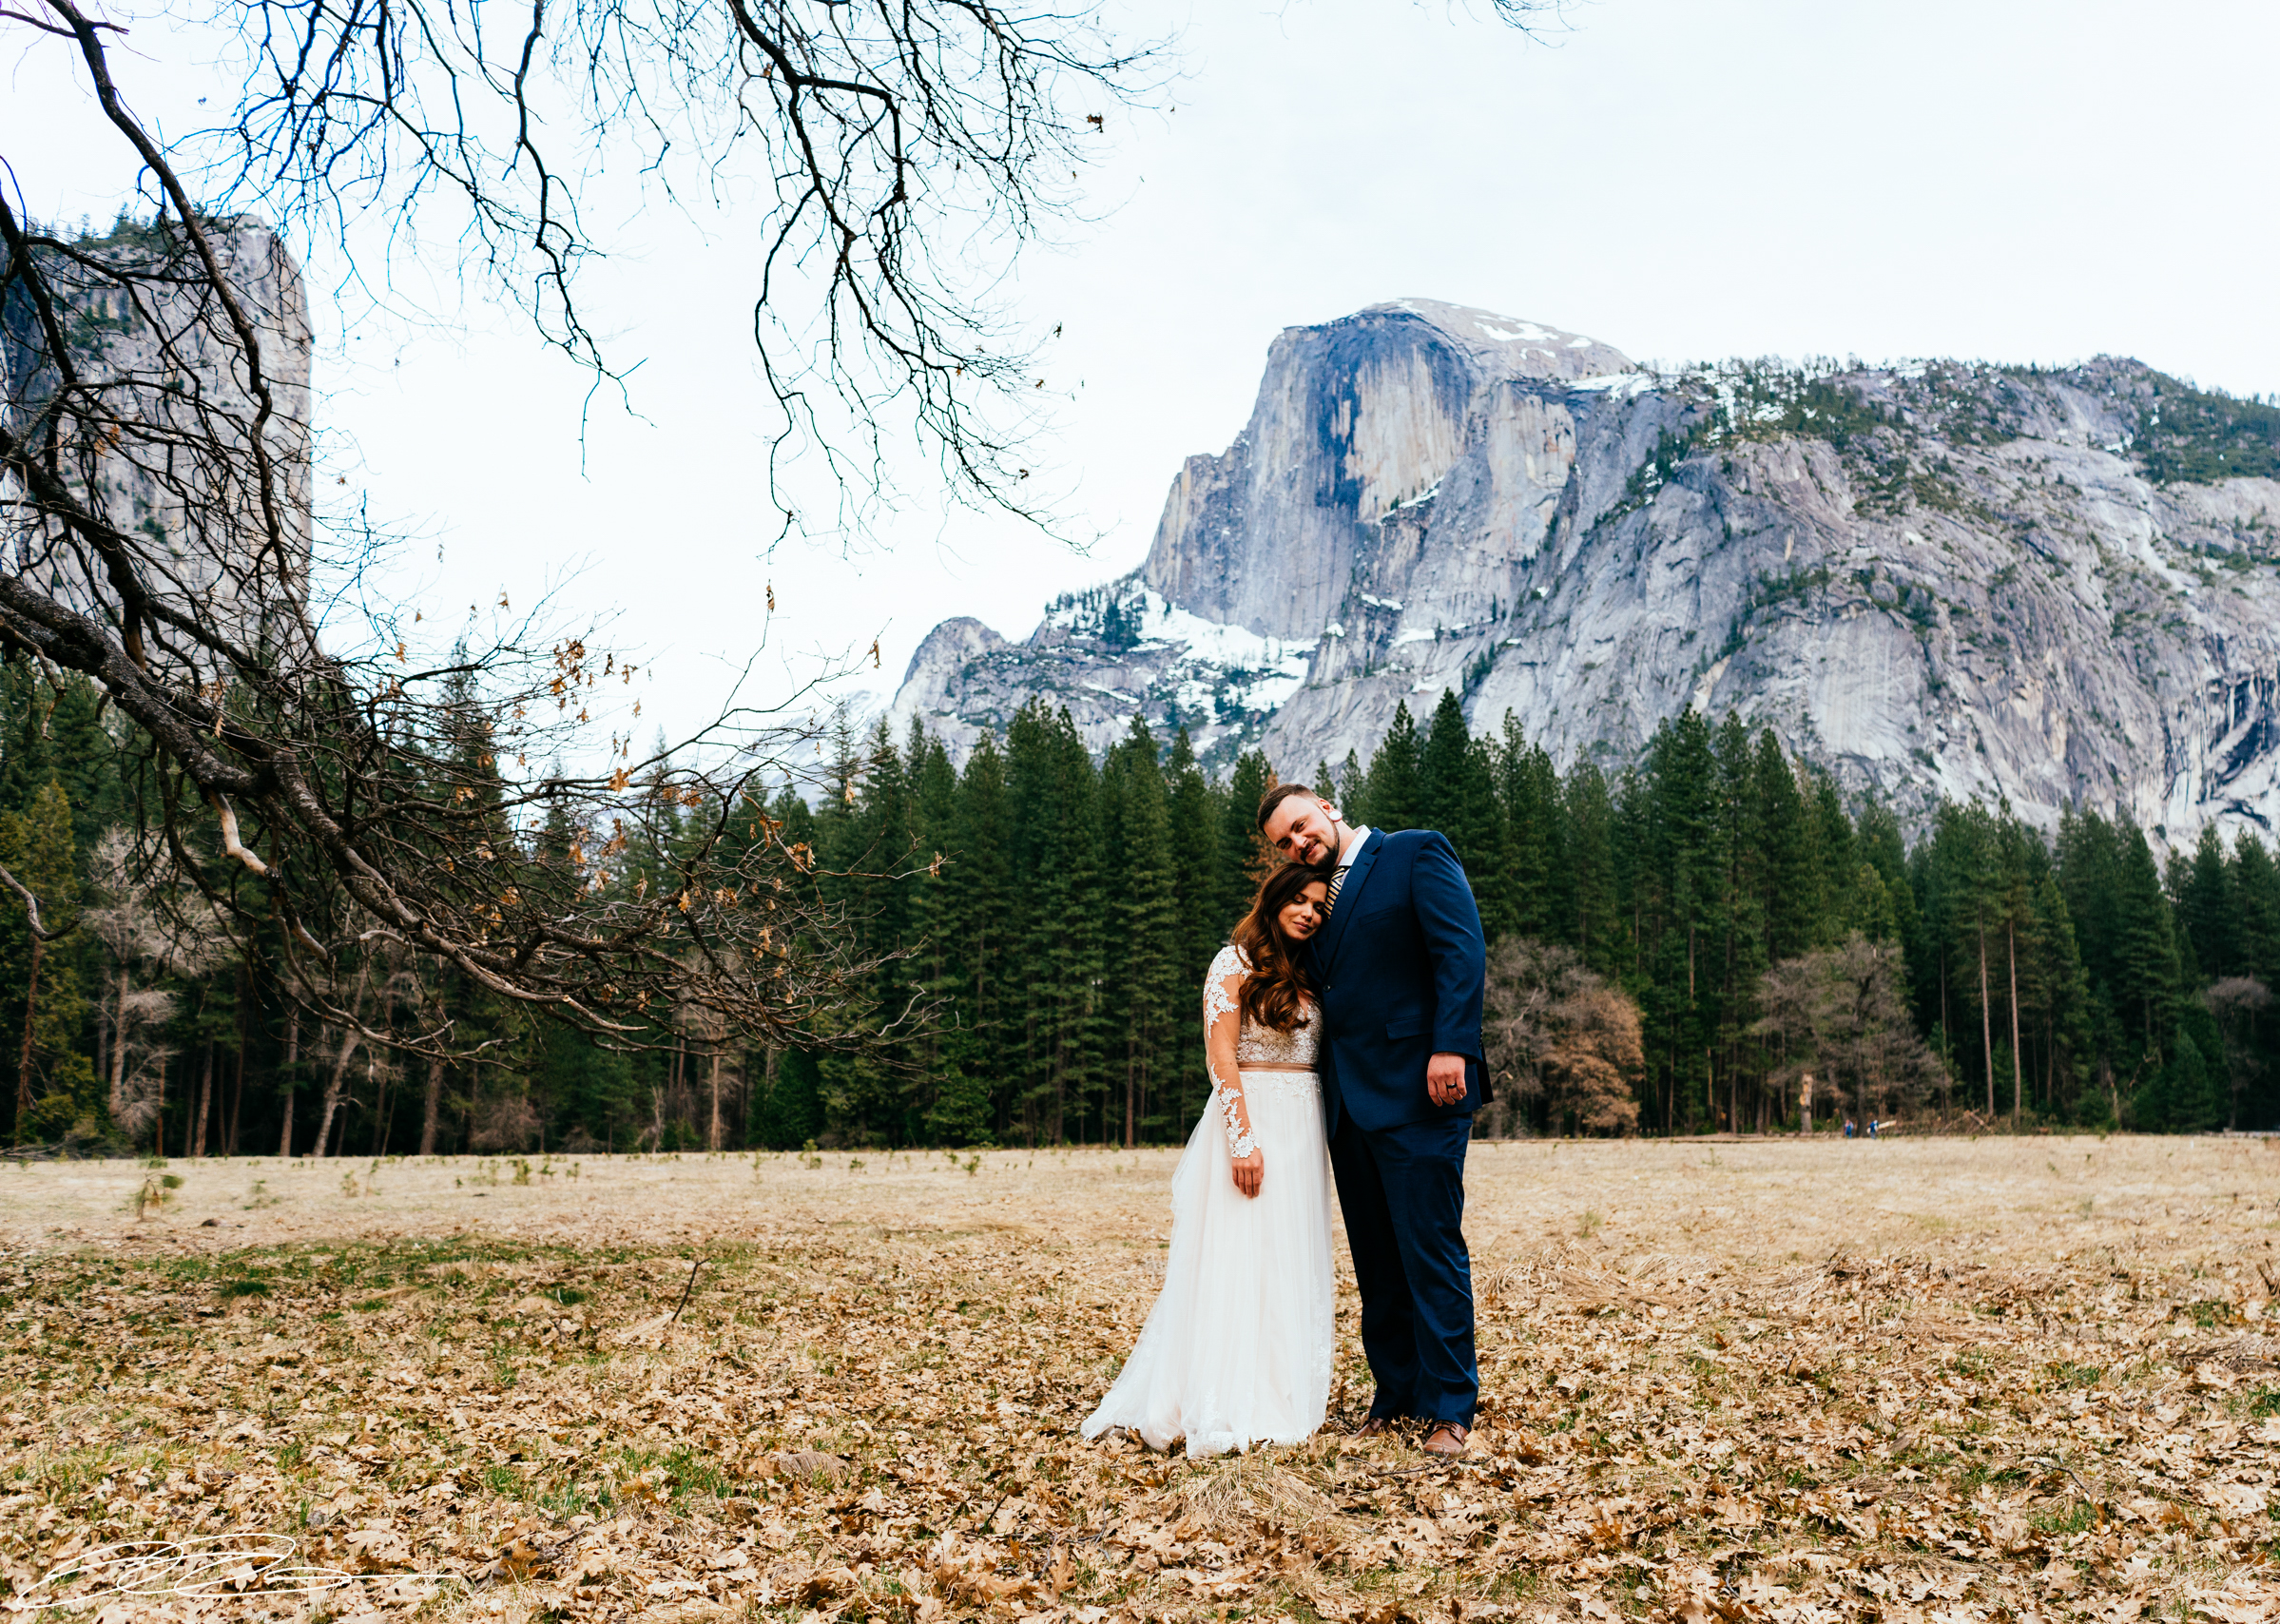 yosemite-wedding-1 (16 of 16).JPG